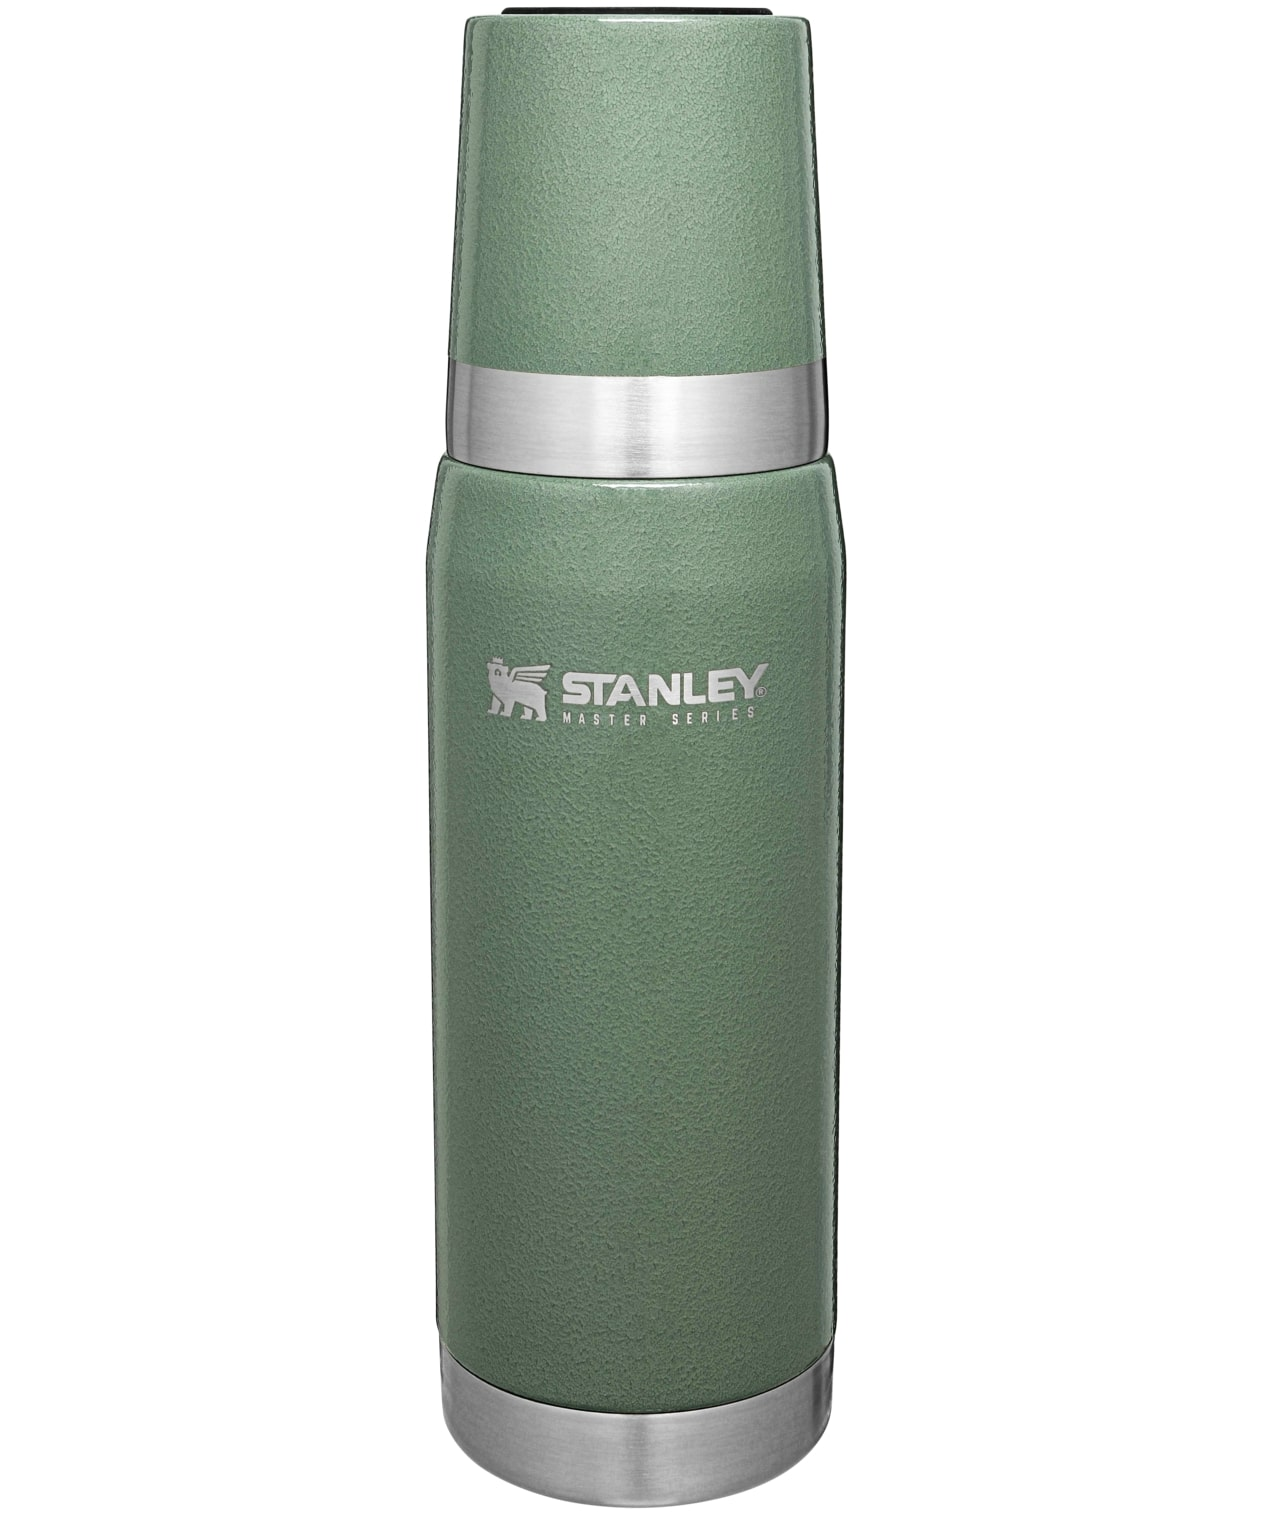 Bình giữ nhiệt Stanley Master Unbreakable Thermal Bottle 25oz | 0.75L – Green